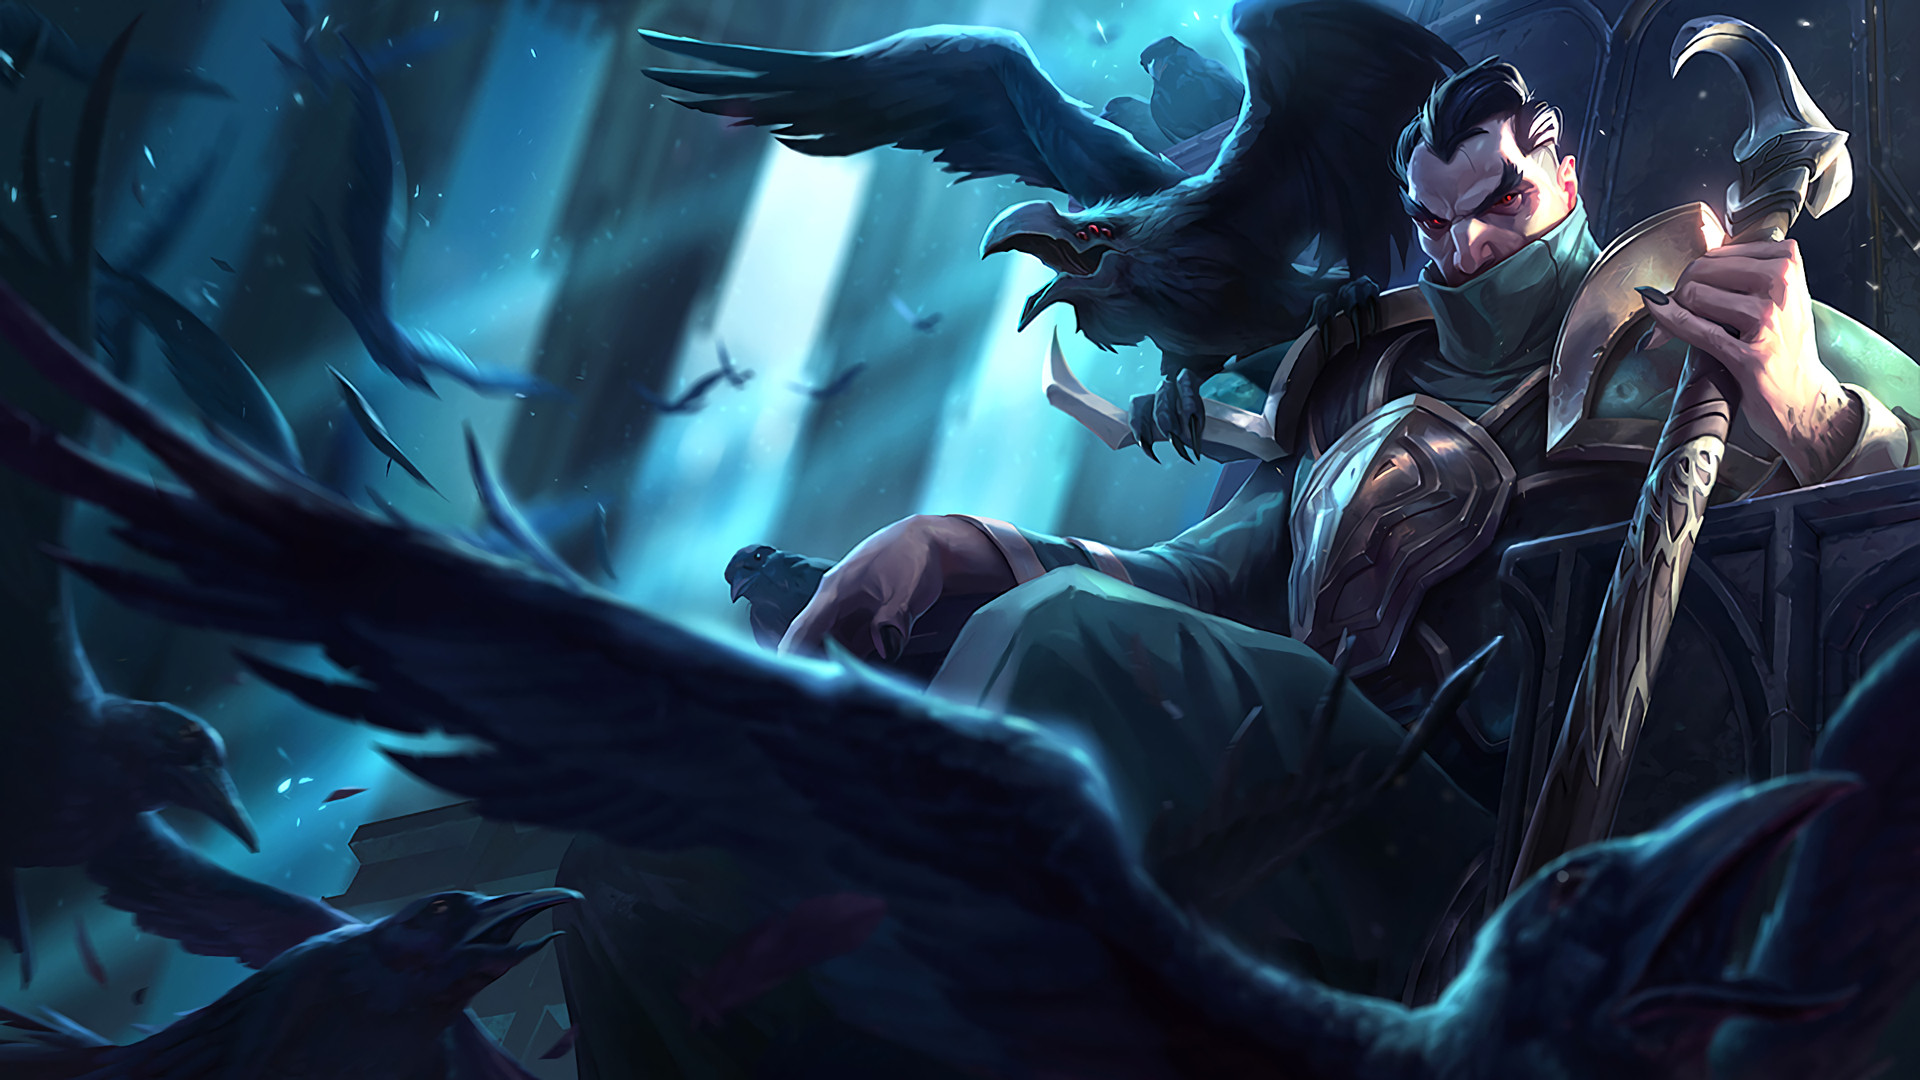 1920x1080 Video Game - League Of Legends Swain (League Of Legends) Wallpaper